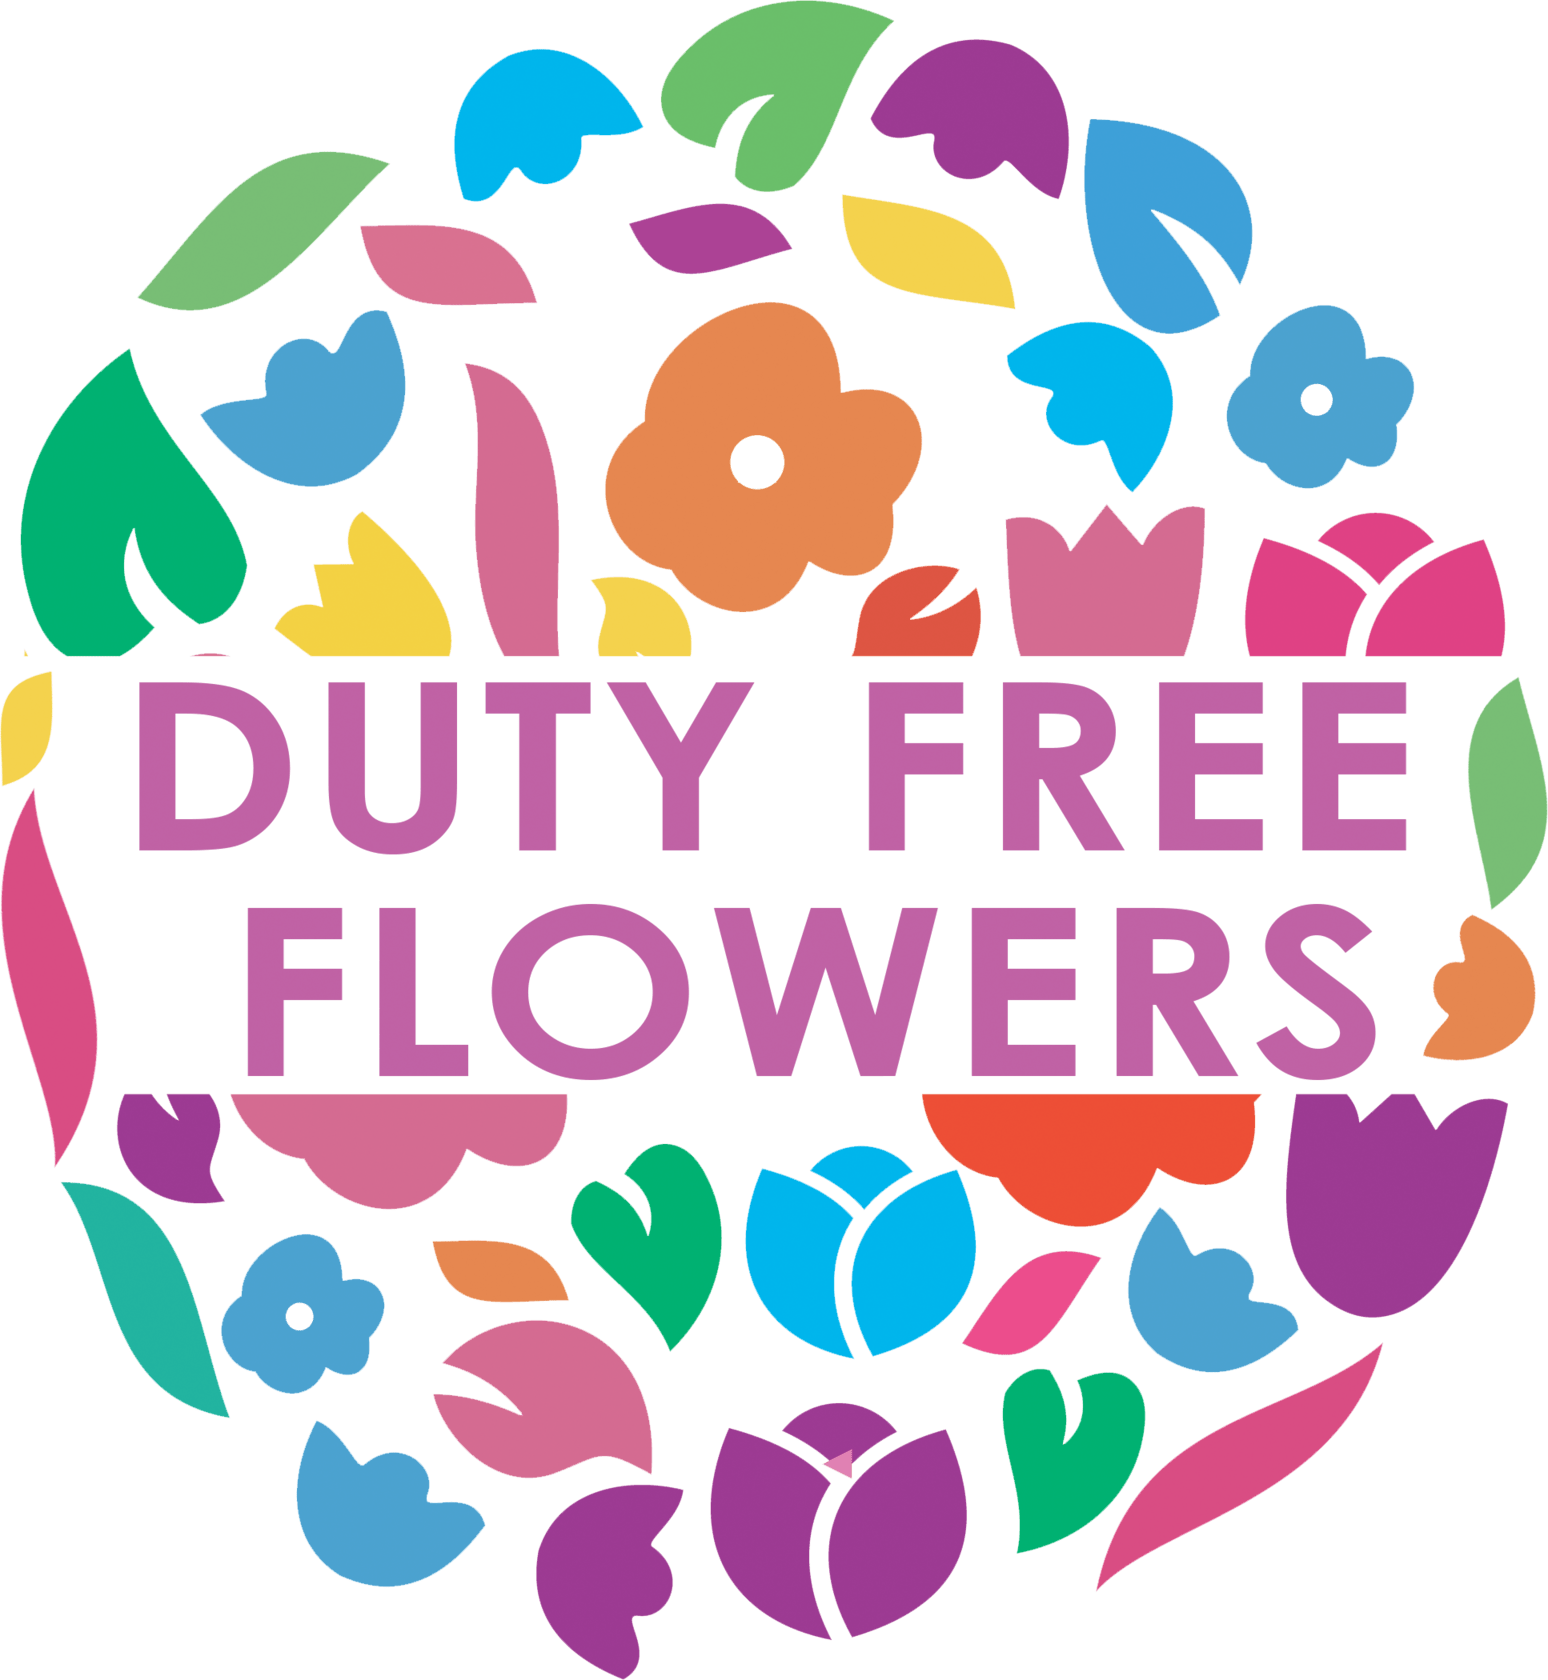 dutyfreeflowers.ru